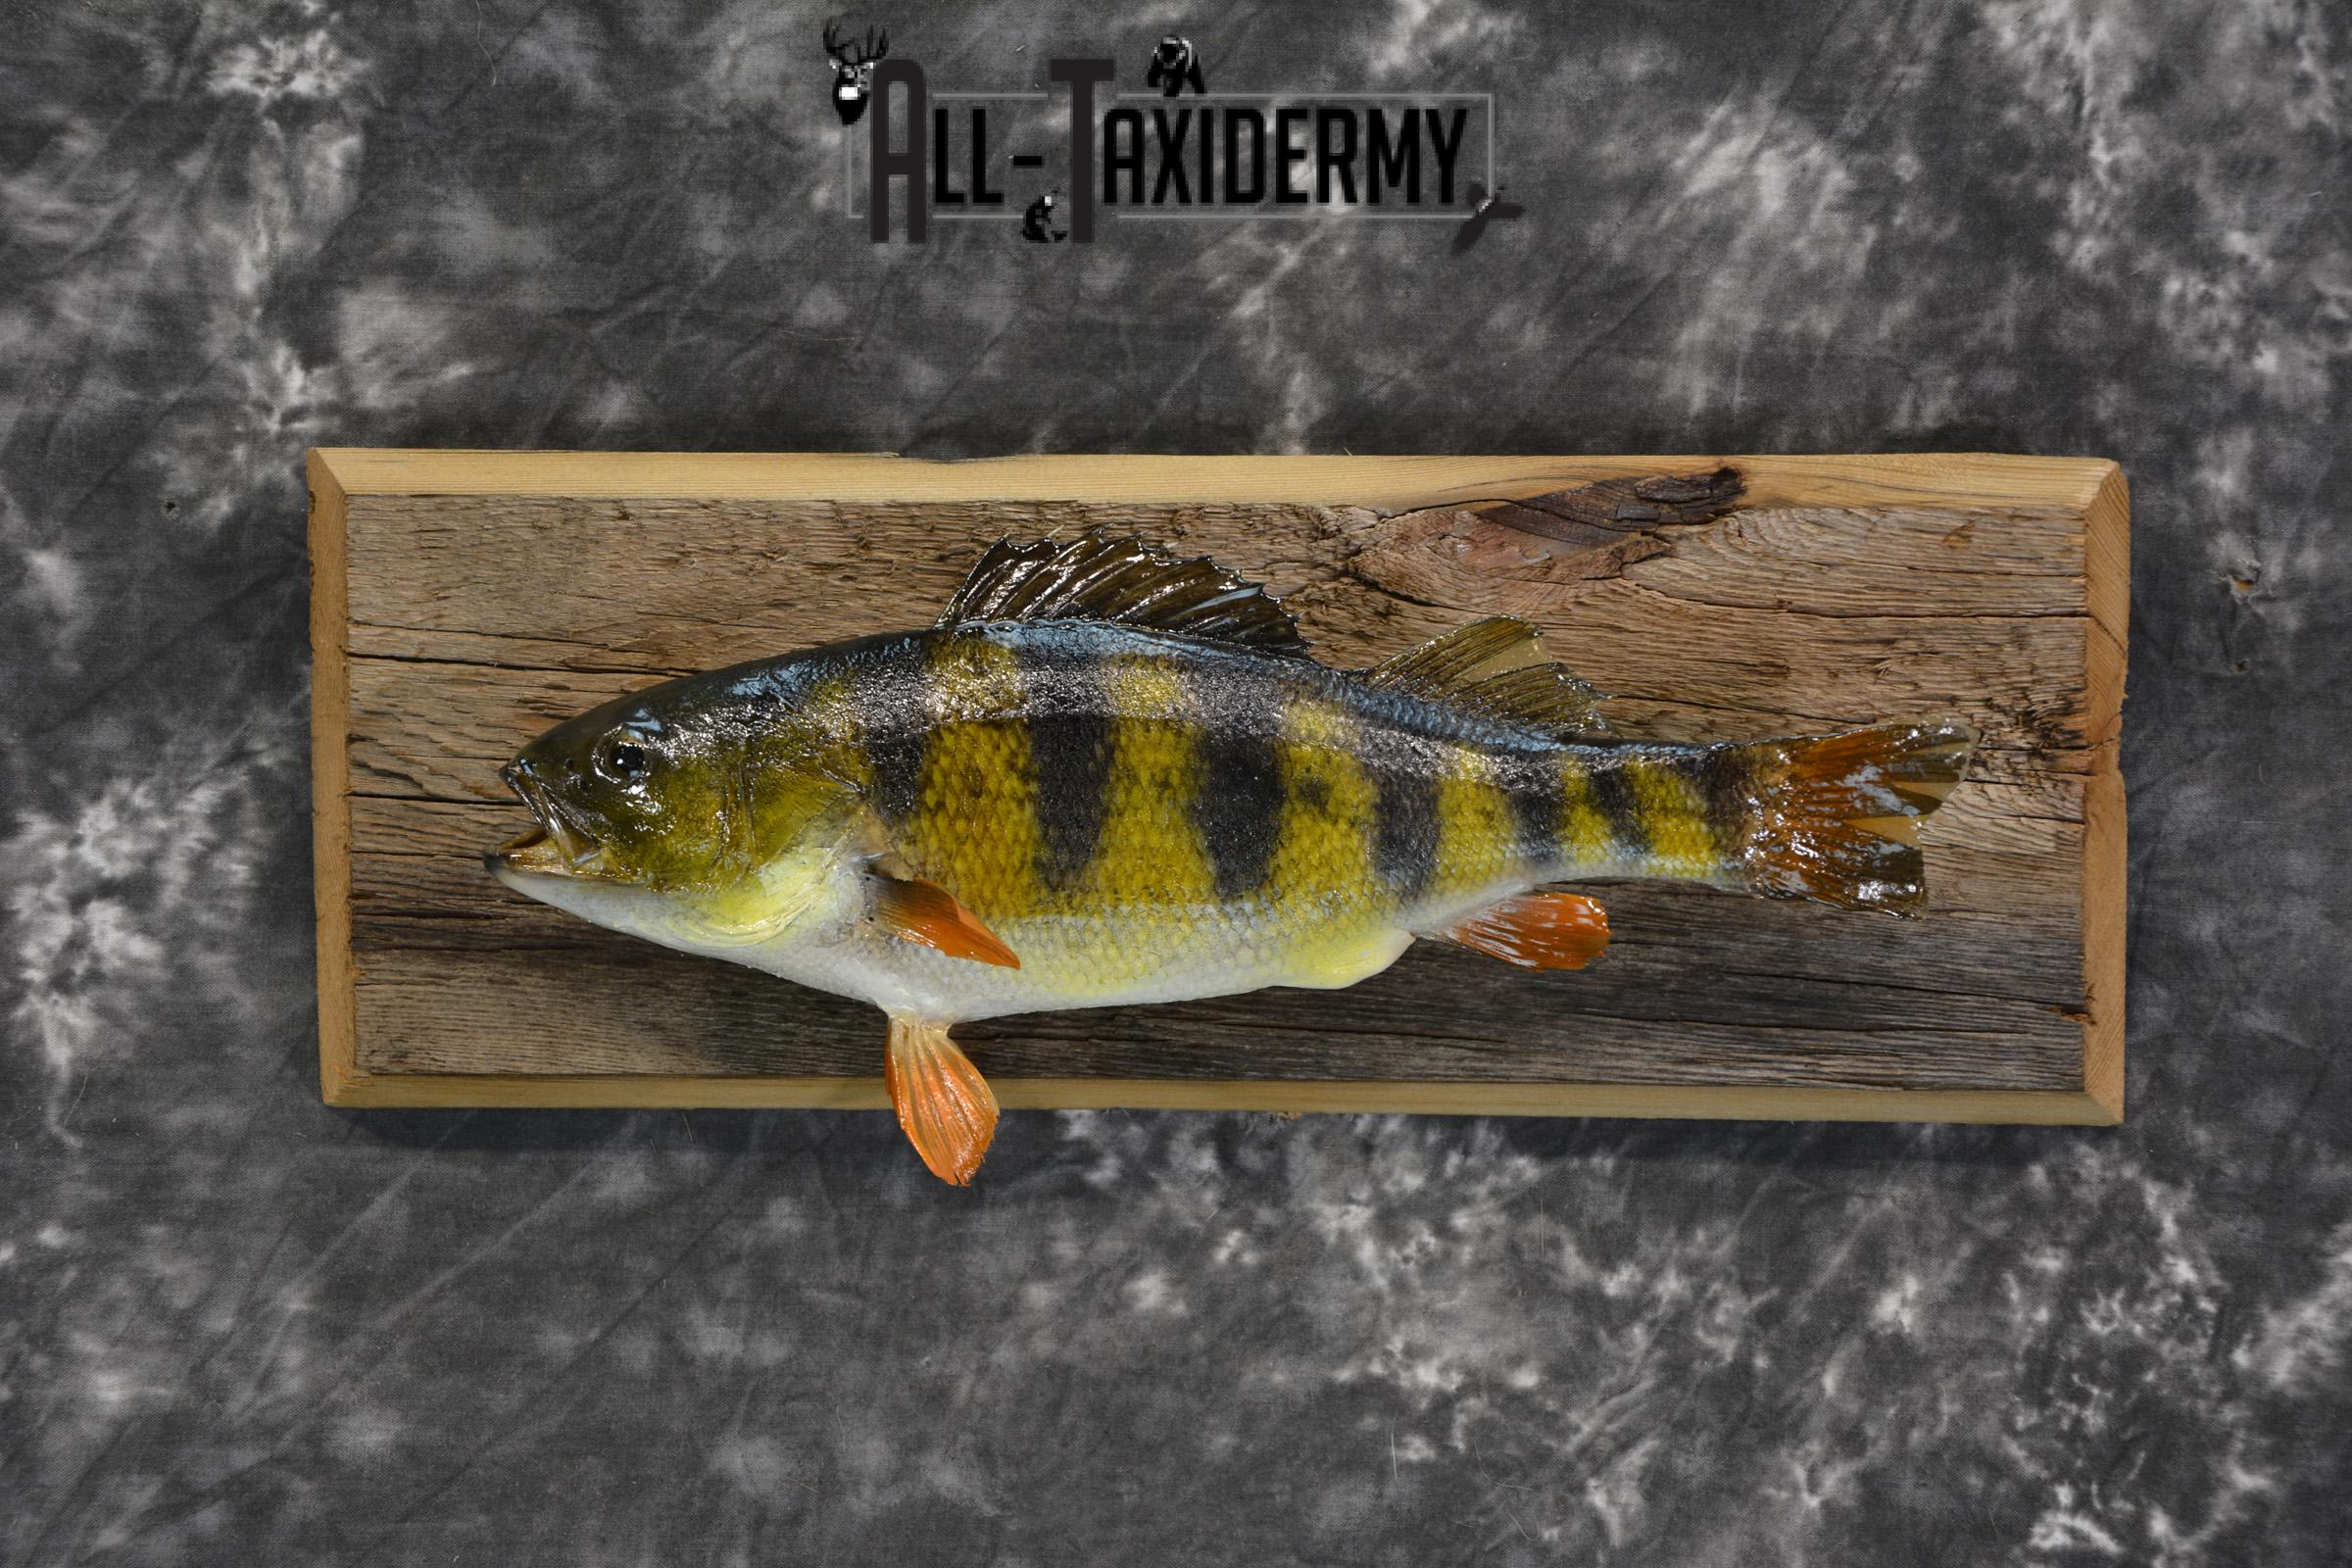 Perch Taxidermy fish mount for sale SKU 1852.3